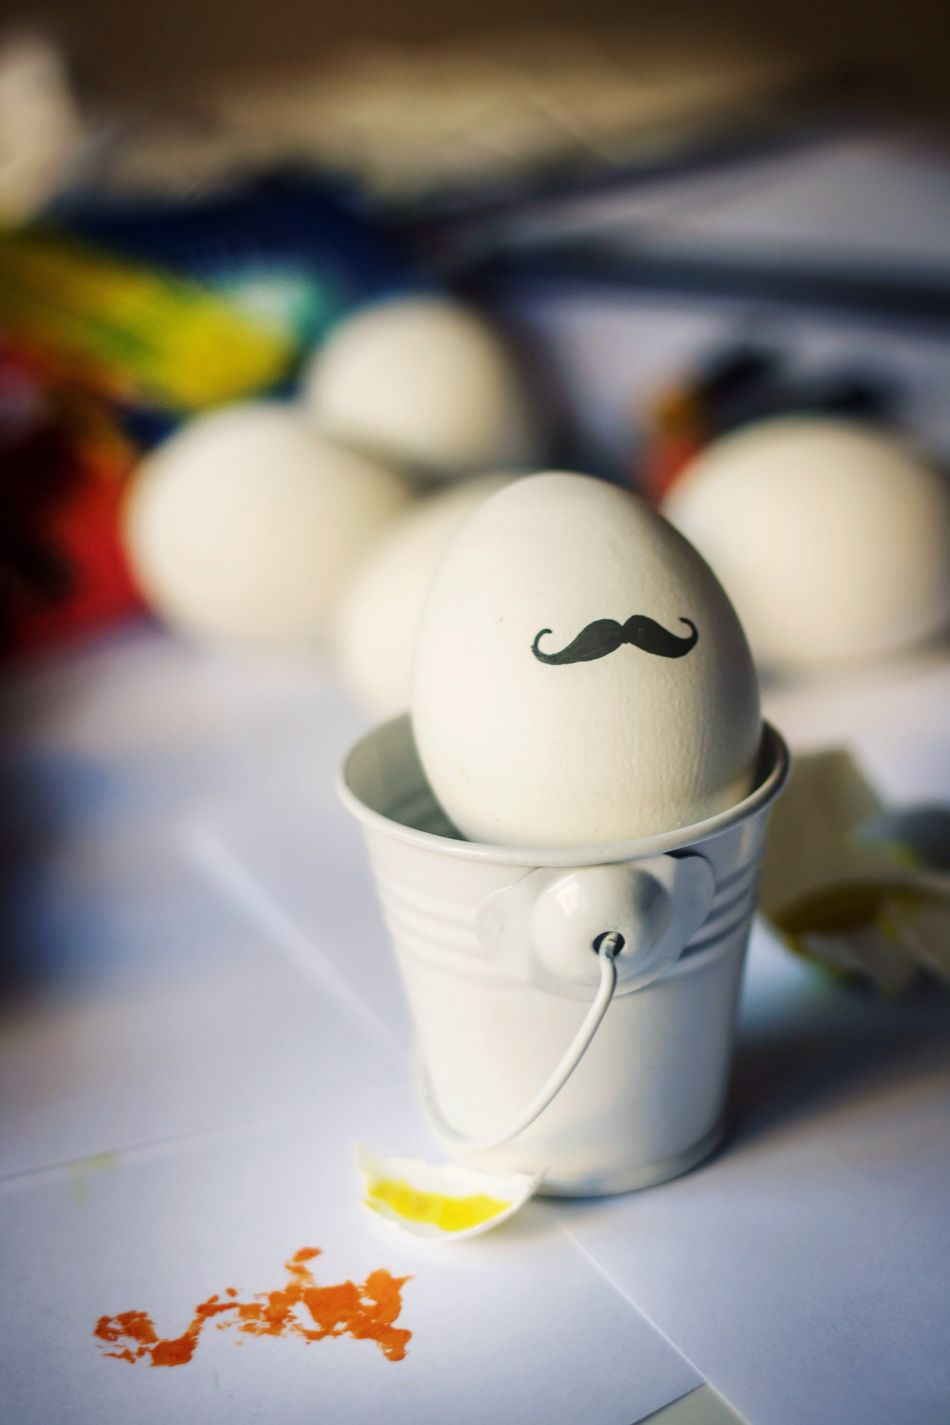 Egg White Color Table Focus On Foreground Close-up Funny Eggcup Food Easter Art